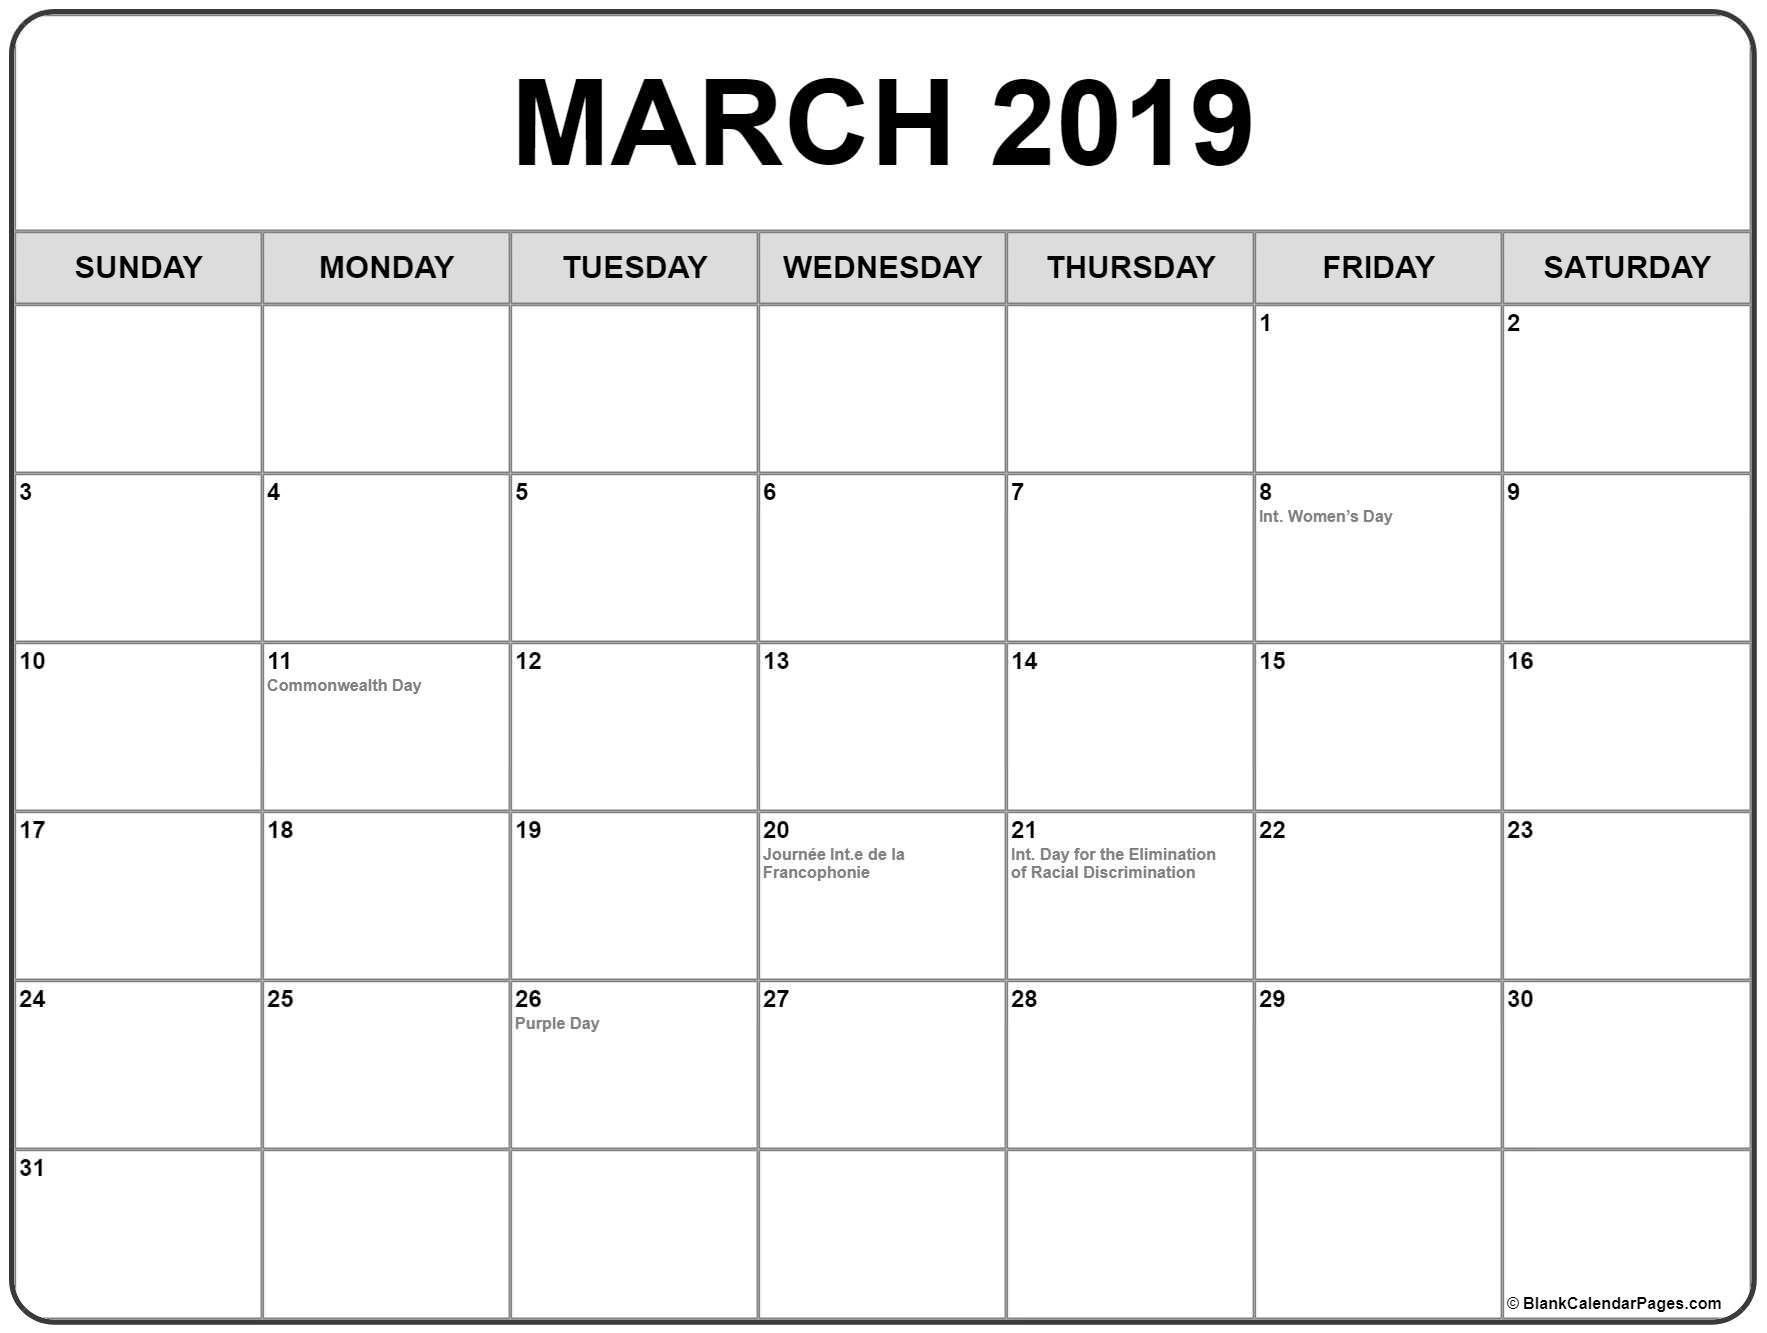 March 2019 Calendar Canada With Holidays - Free Printable with Printable Canadian Calendar With Holidays